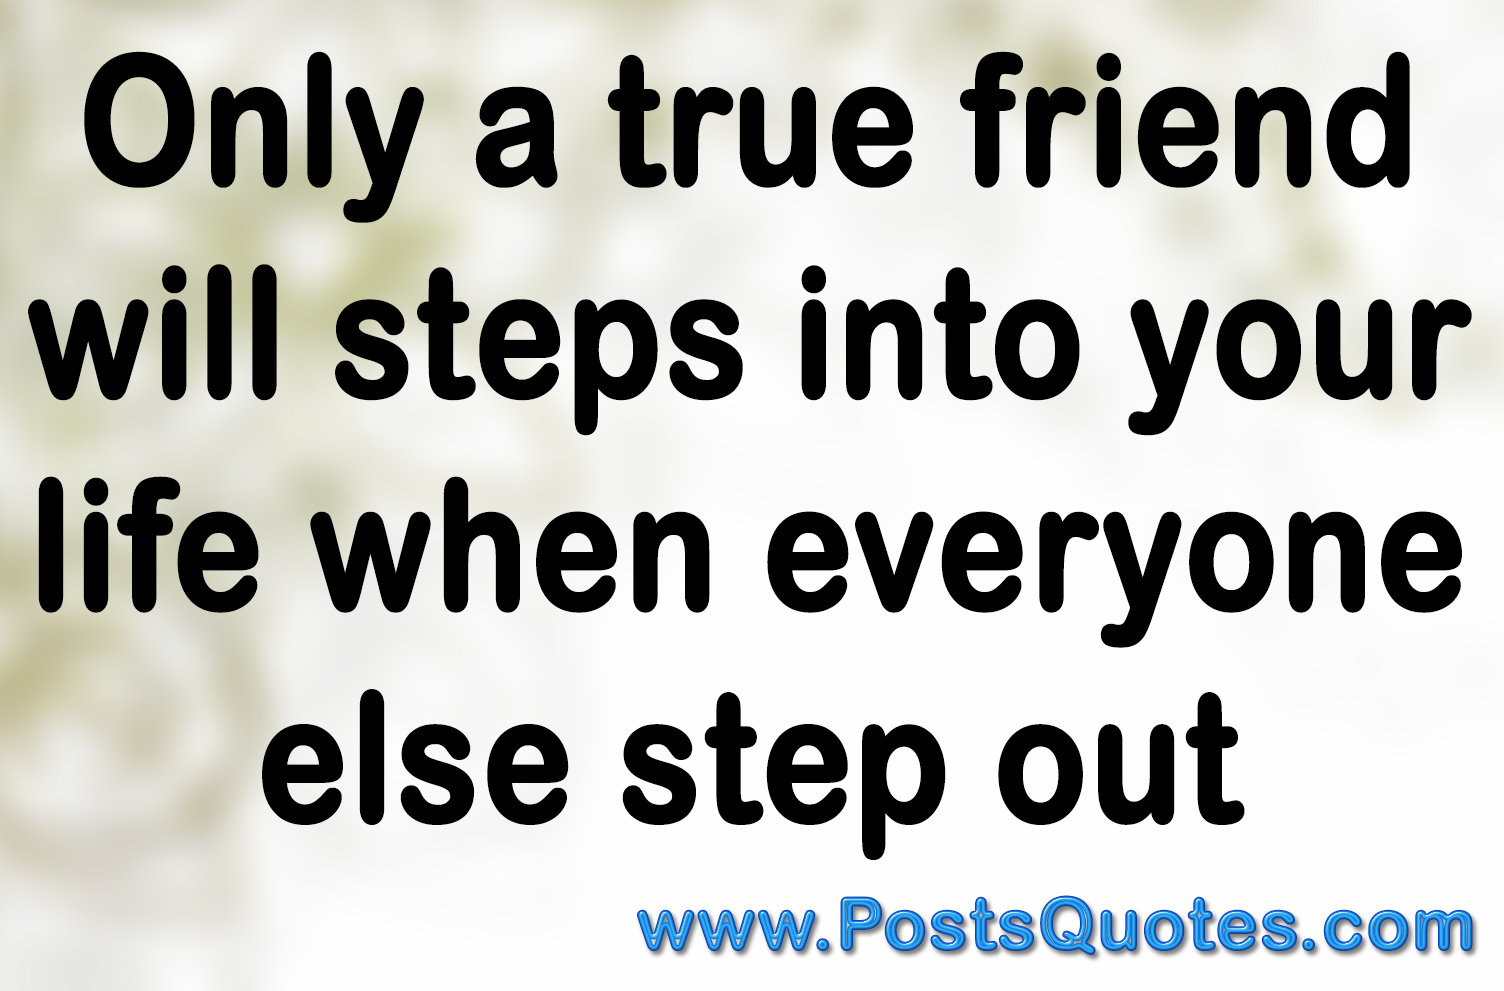 Funny friends quotes